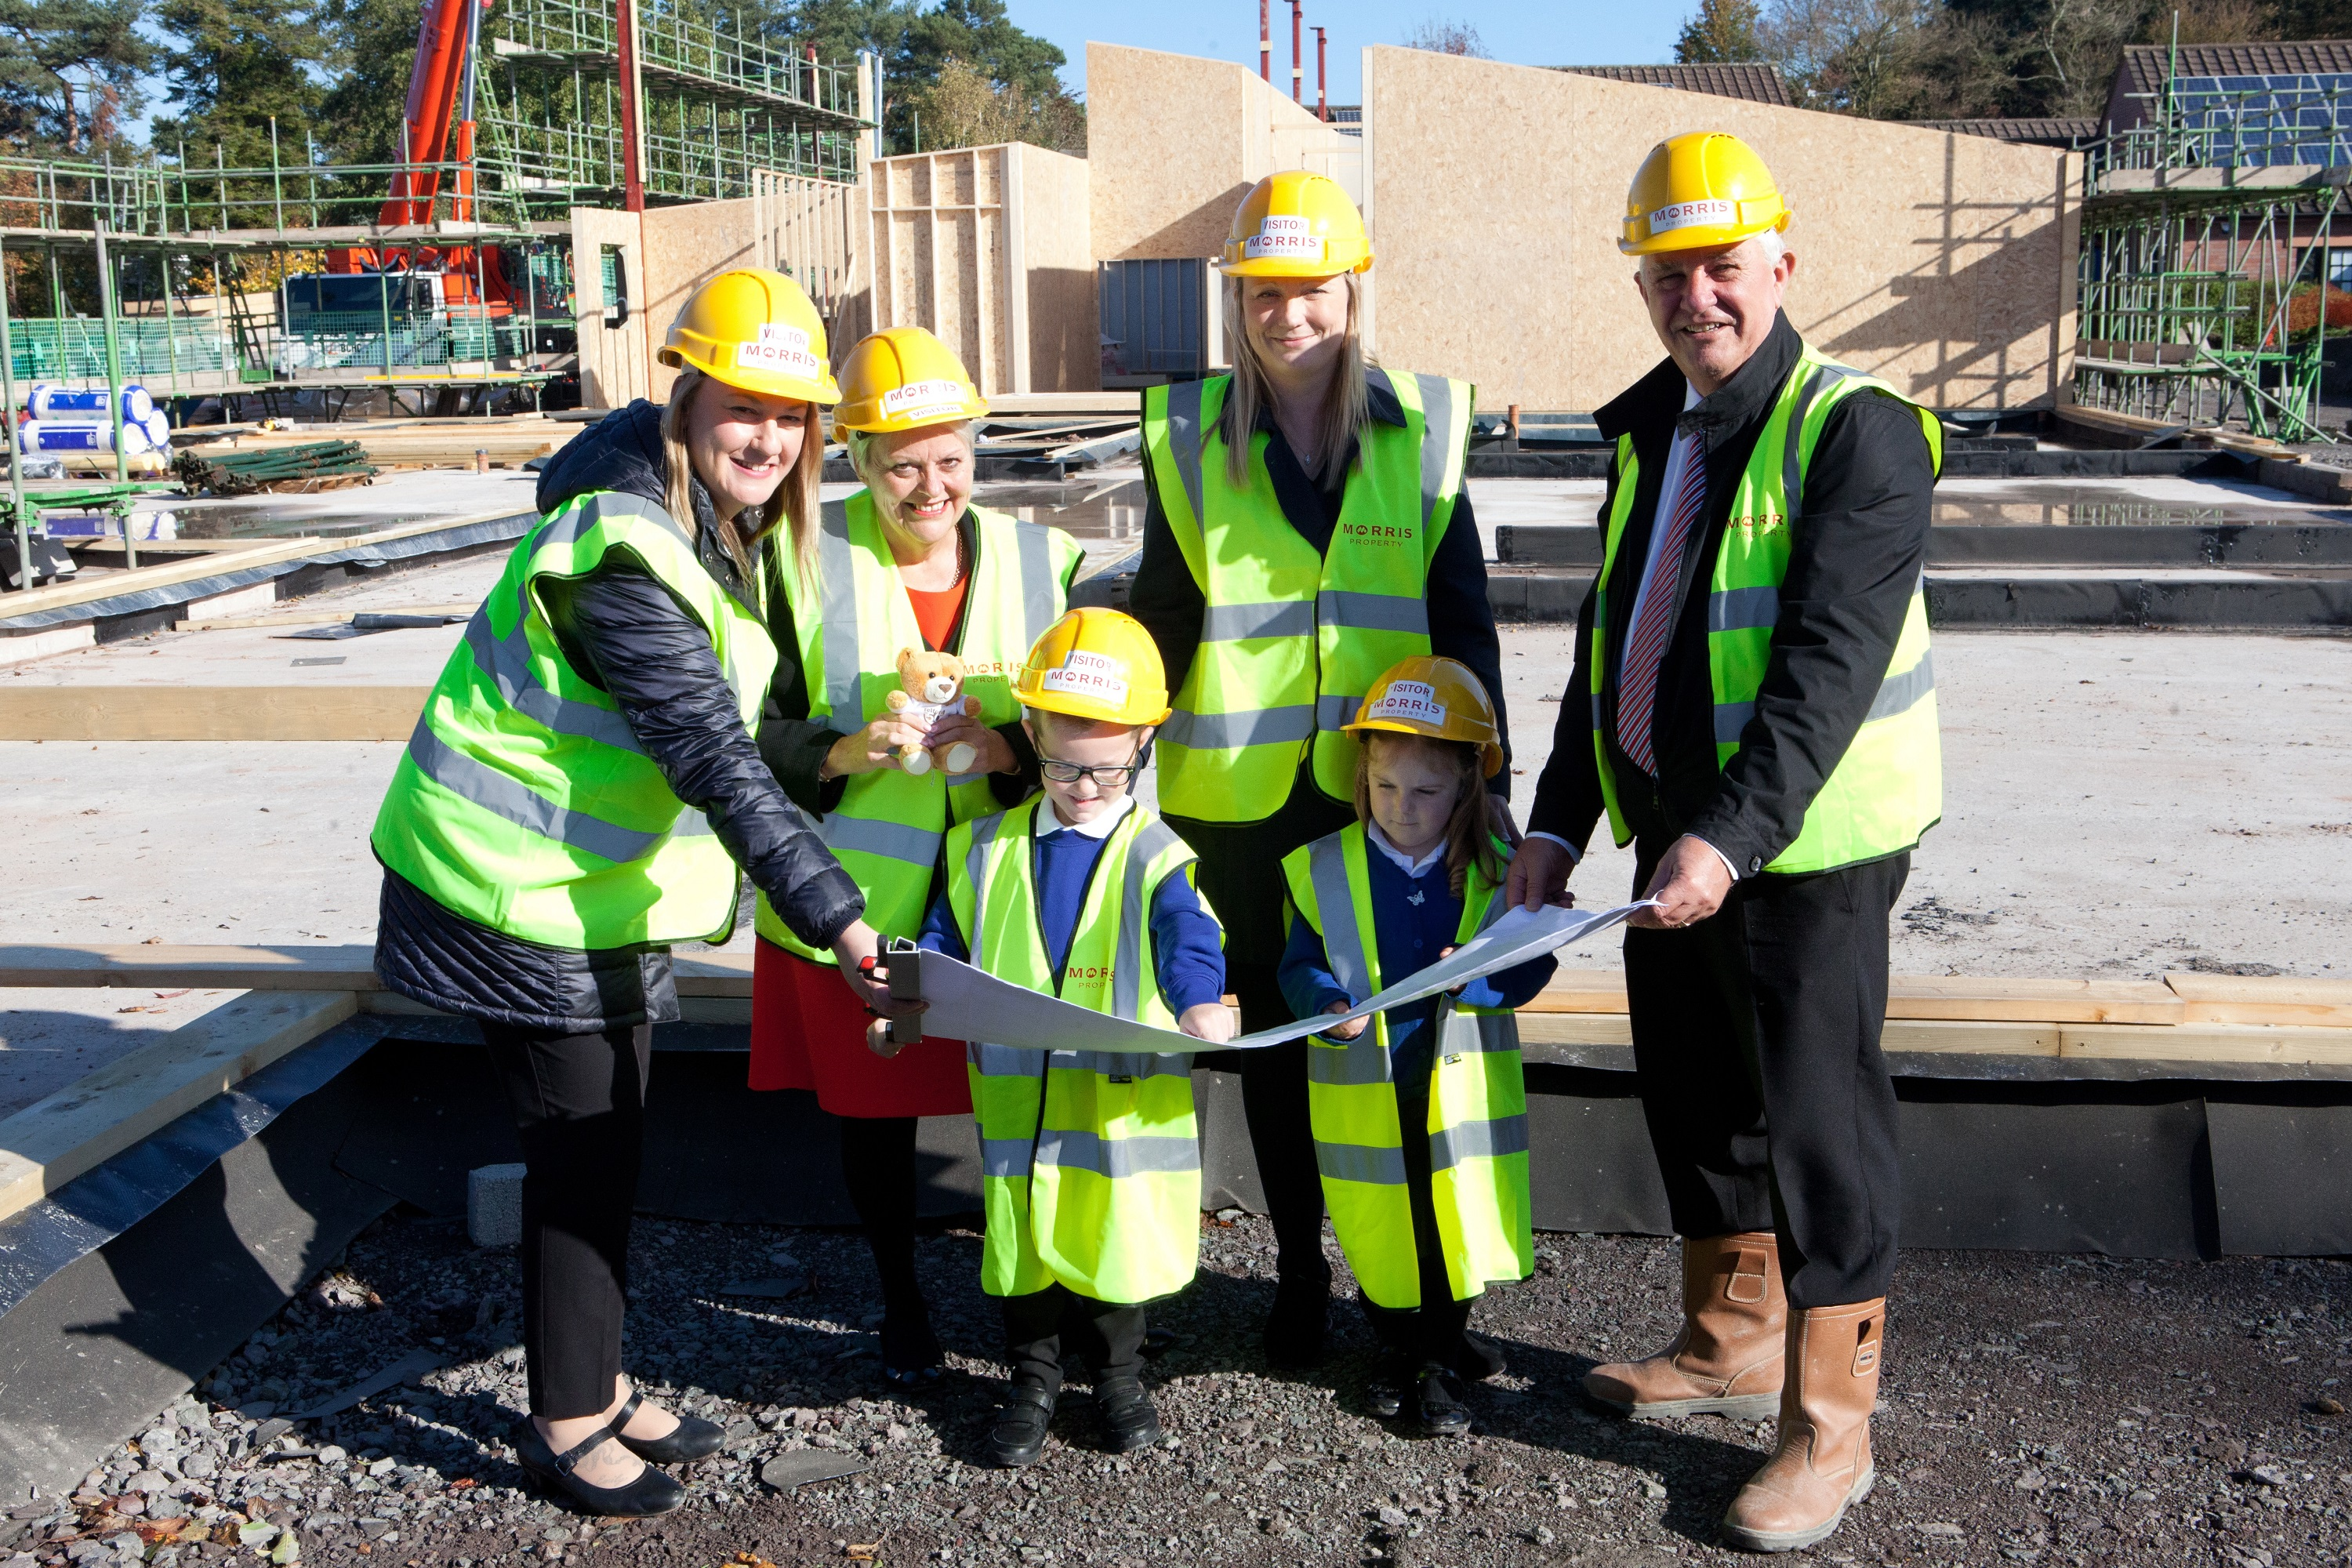 Contractor gets work under way for school's expansion